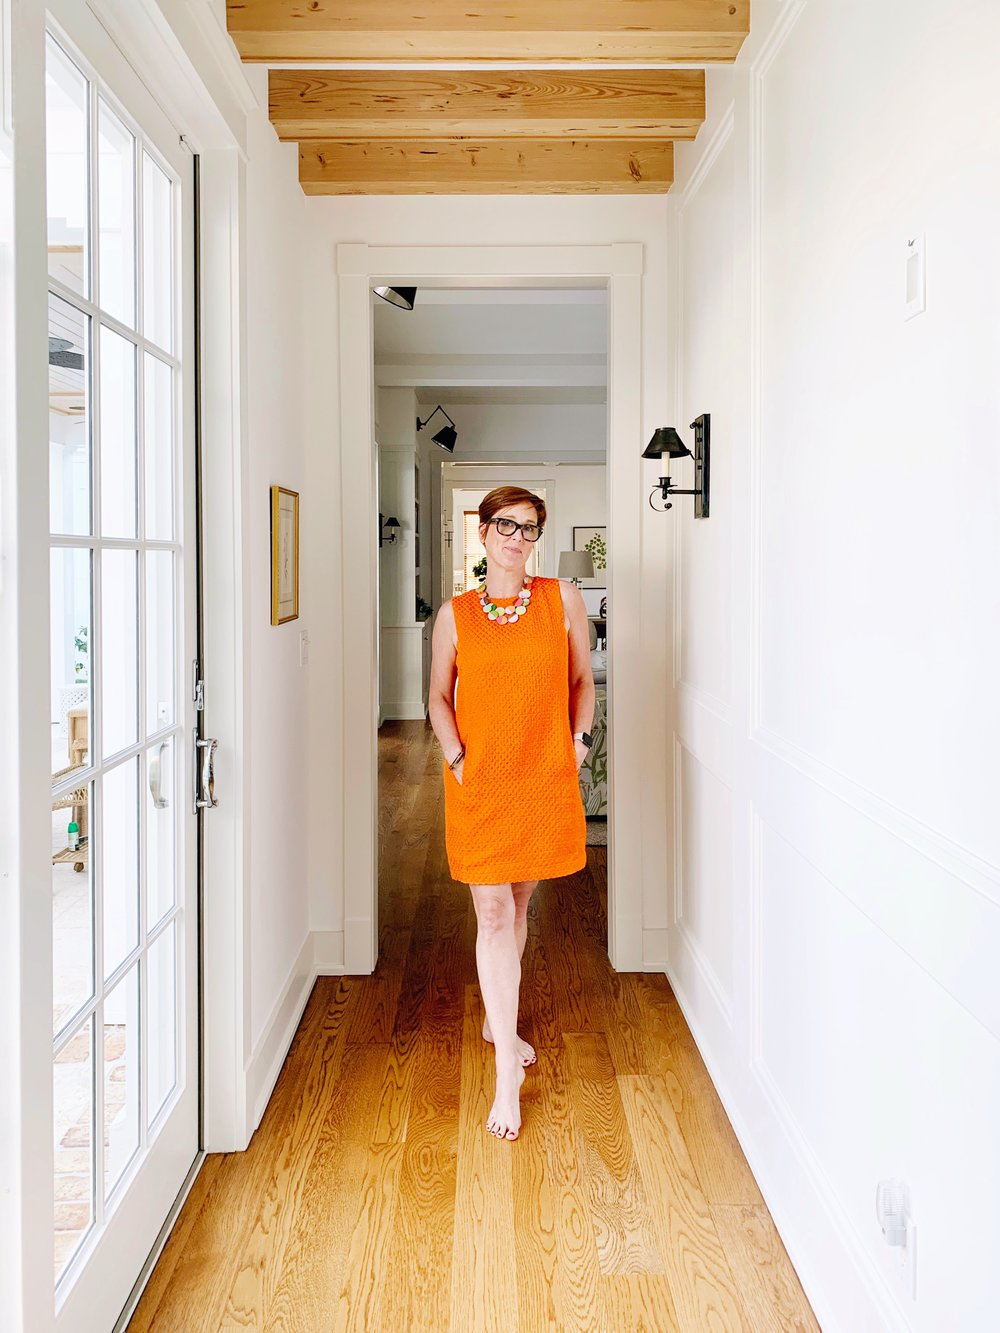 spring 2019 - if you haven't figured it out yet, my color this spring is orange. it's fun to wear and fun to paint.I picked up this super comfortable shift dress from mango and paired it with an extended jane bib necklace on spring break. it transitioned easily from an afternoon of shopping in west palm to dinner with my parents by the water. I just threw my monogrammed striped shirt over my shoulders for when the sun went down.I ordered the cute orange swimsuit (below) from asos and I'm sorry I didn't grab it in black, too - it's incredibly comfortable.I've been working with the colors in the studio and there's a rope necklace, bracelet and earrings are all in the works. this shift dress has three big buttons in back and I'm <thisclose> to painting them, too.a huge thank you to abby for helping out with photos while we were away!